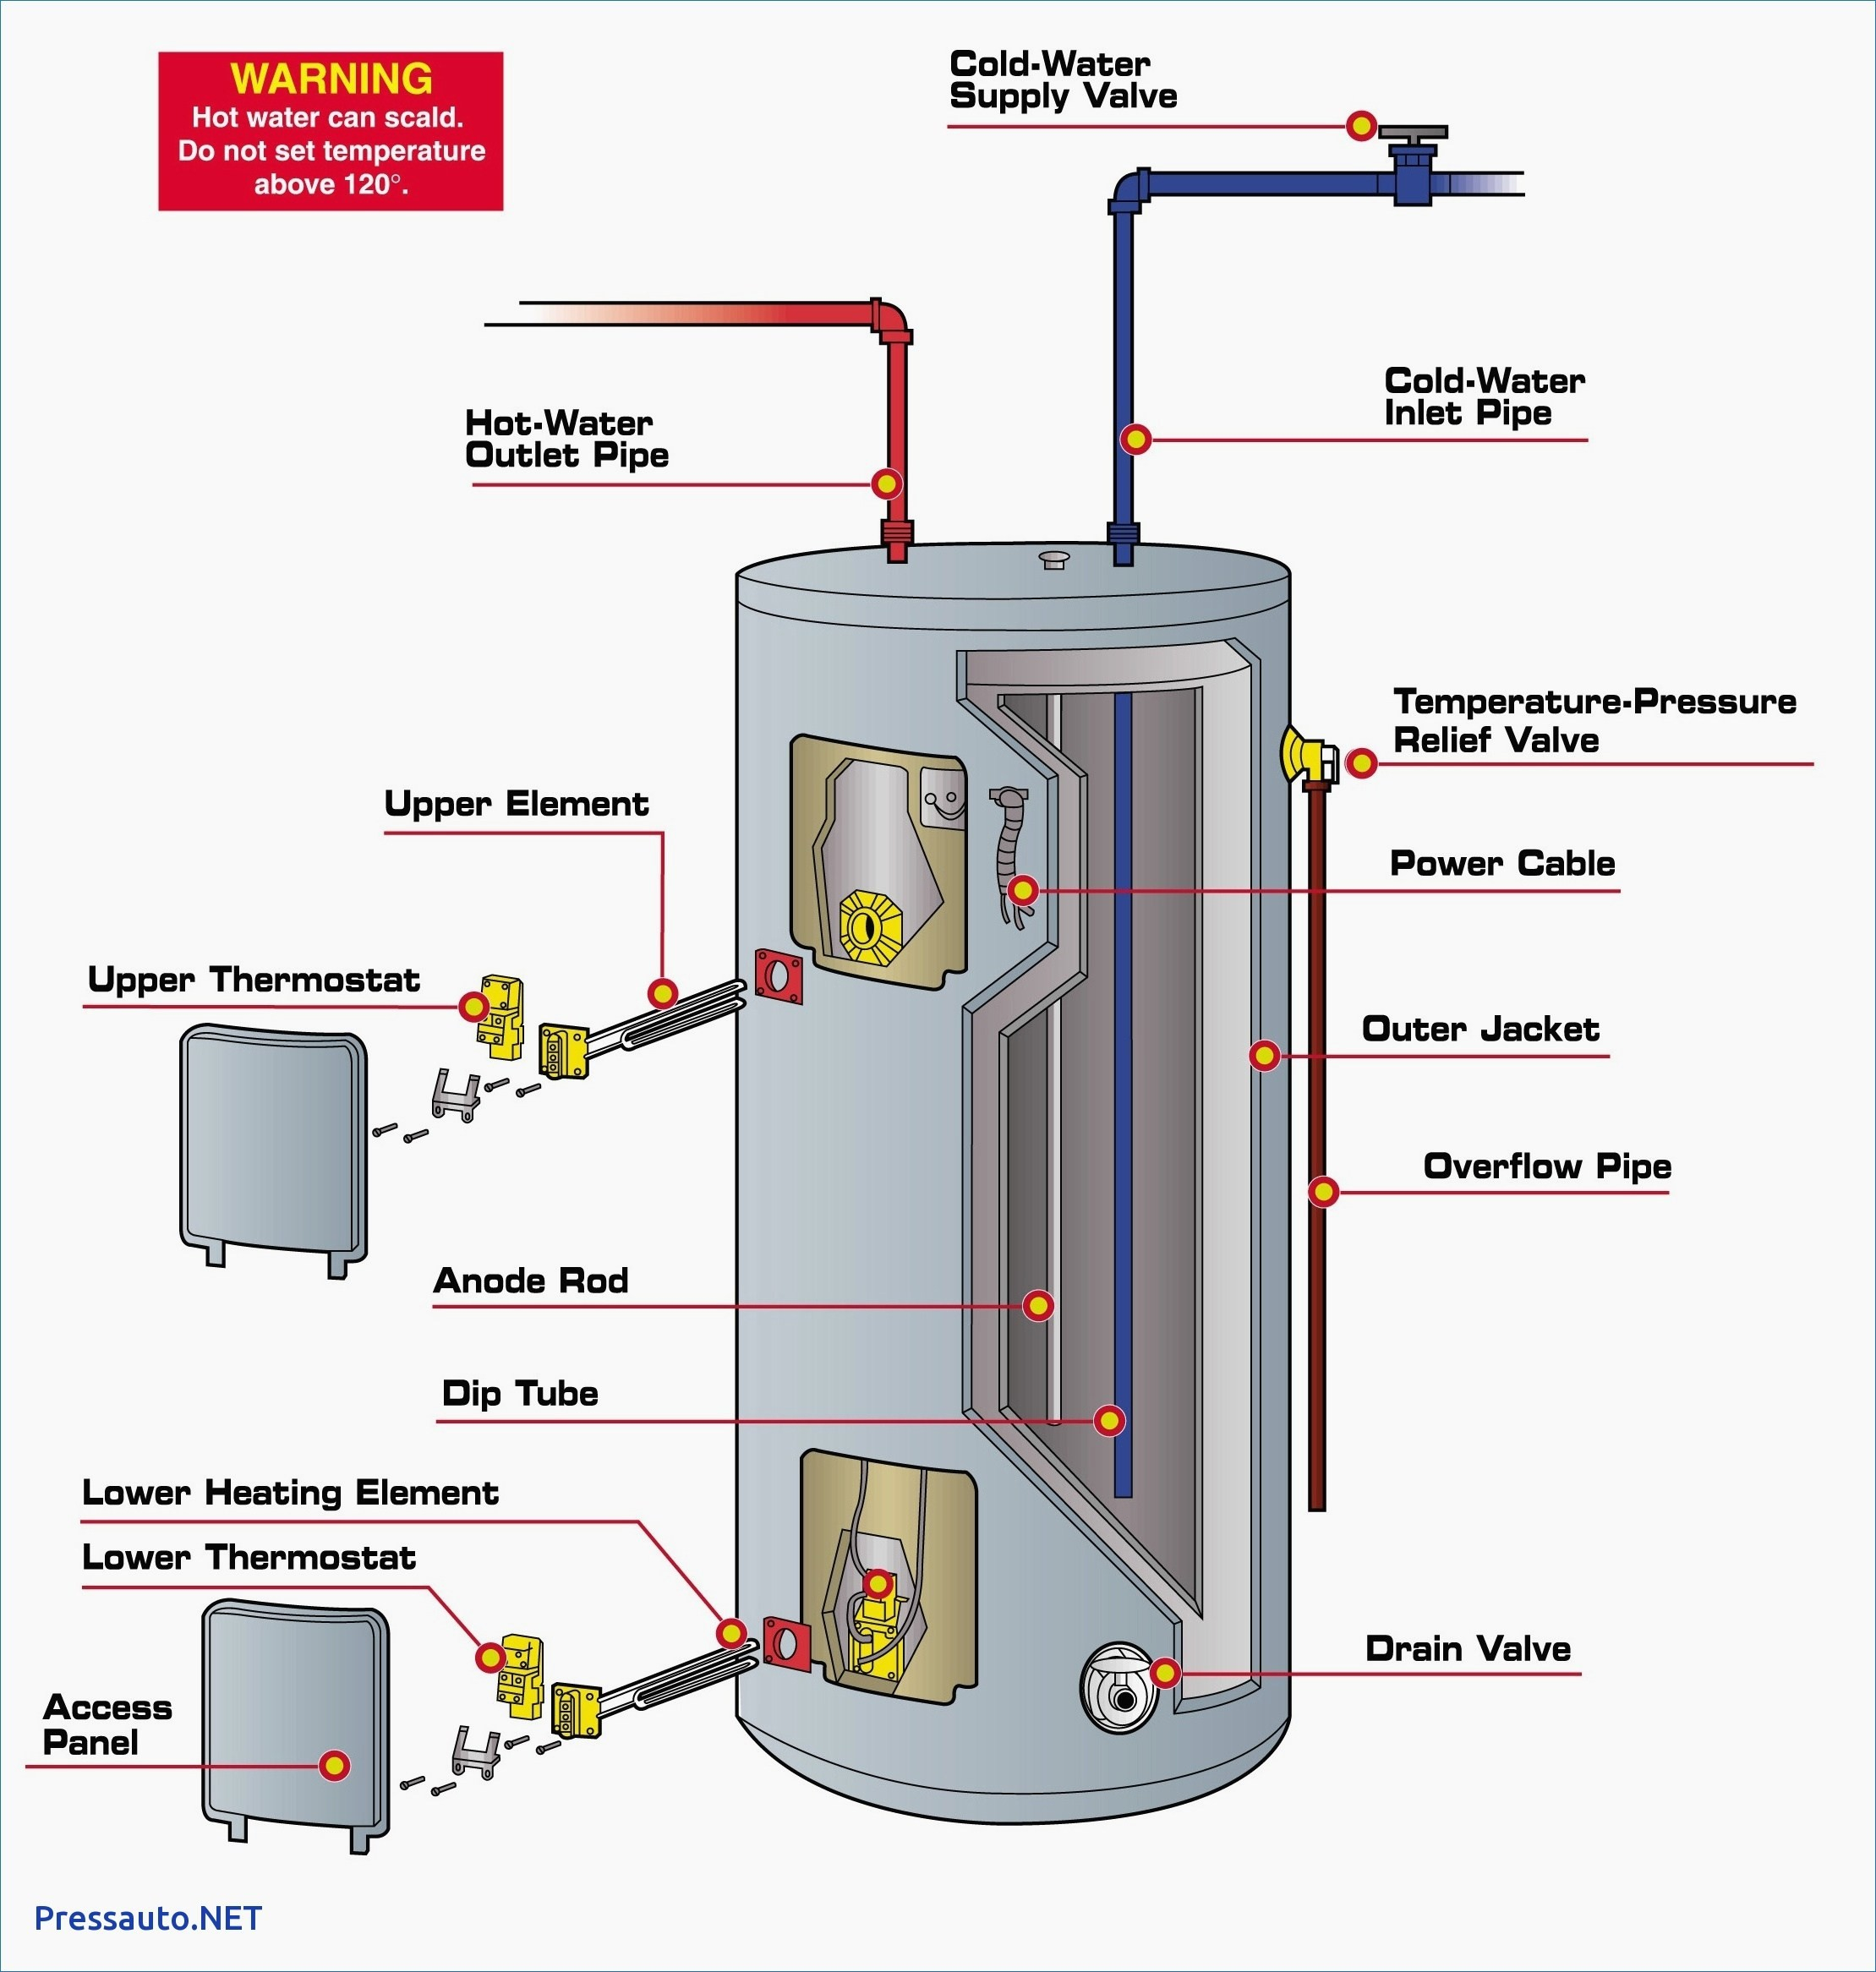 electric hot water tank wiring diagram Collection-Wiring Diagram Electric Water Heater Fresh New Hot Water Heater Wiring Diagram Diagram 15-e